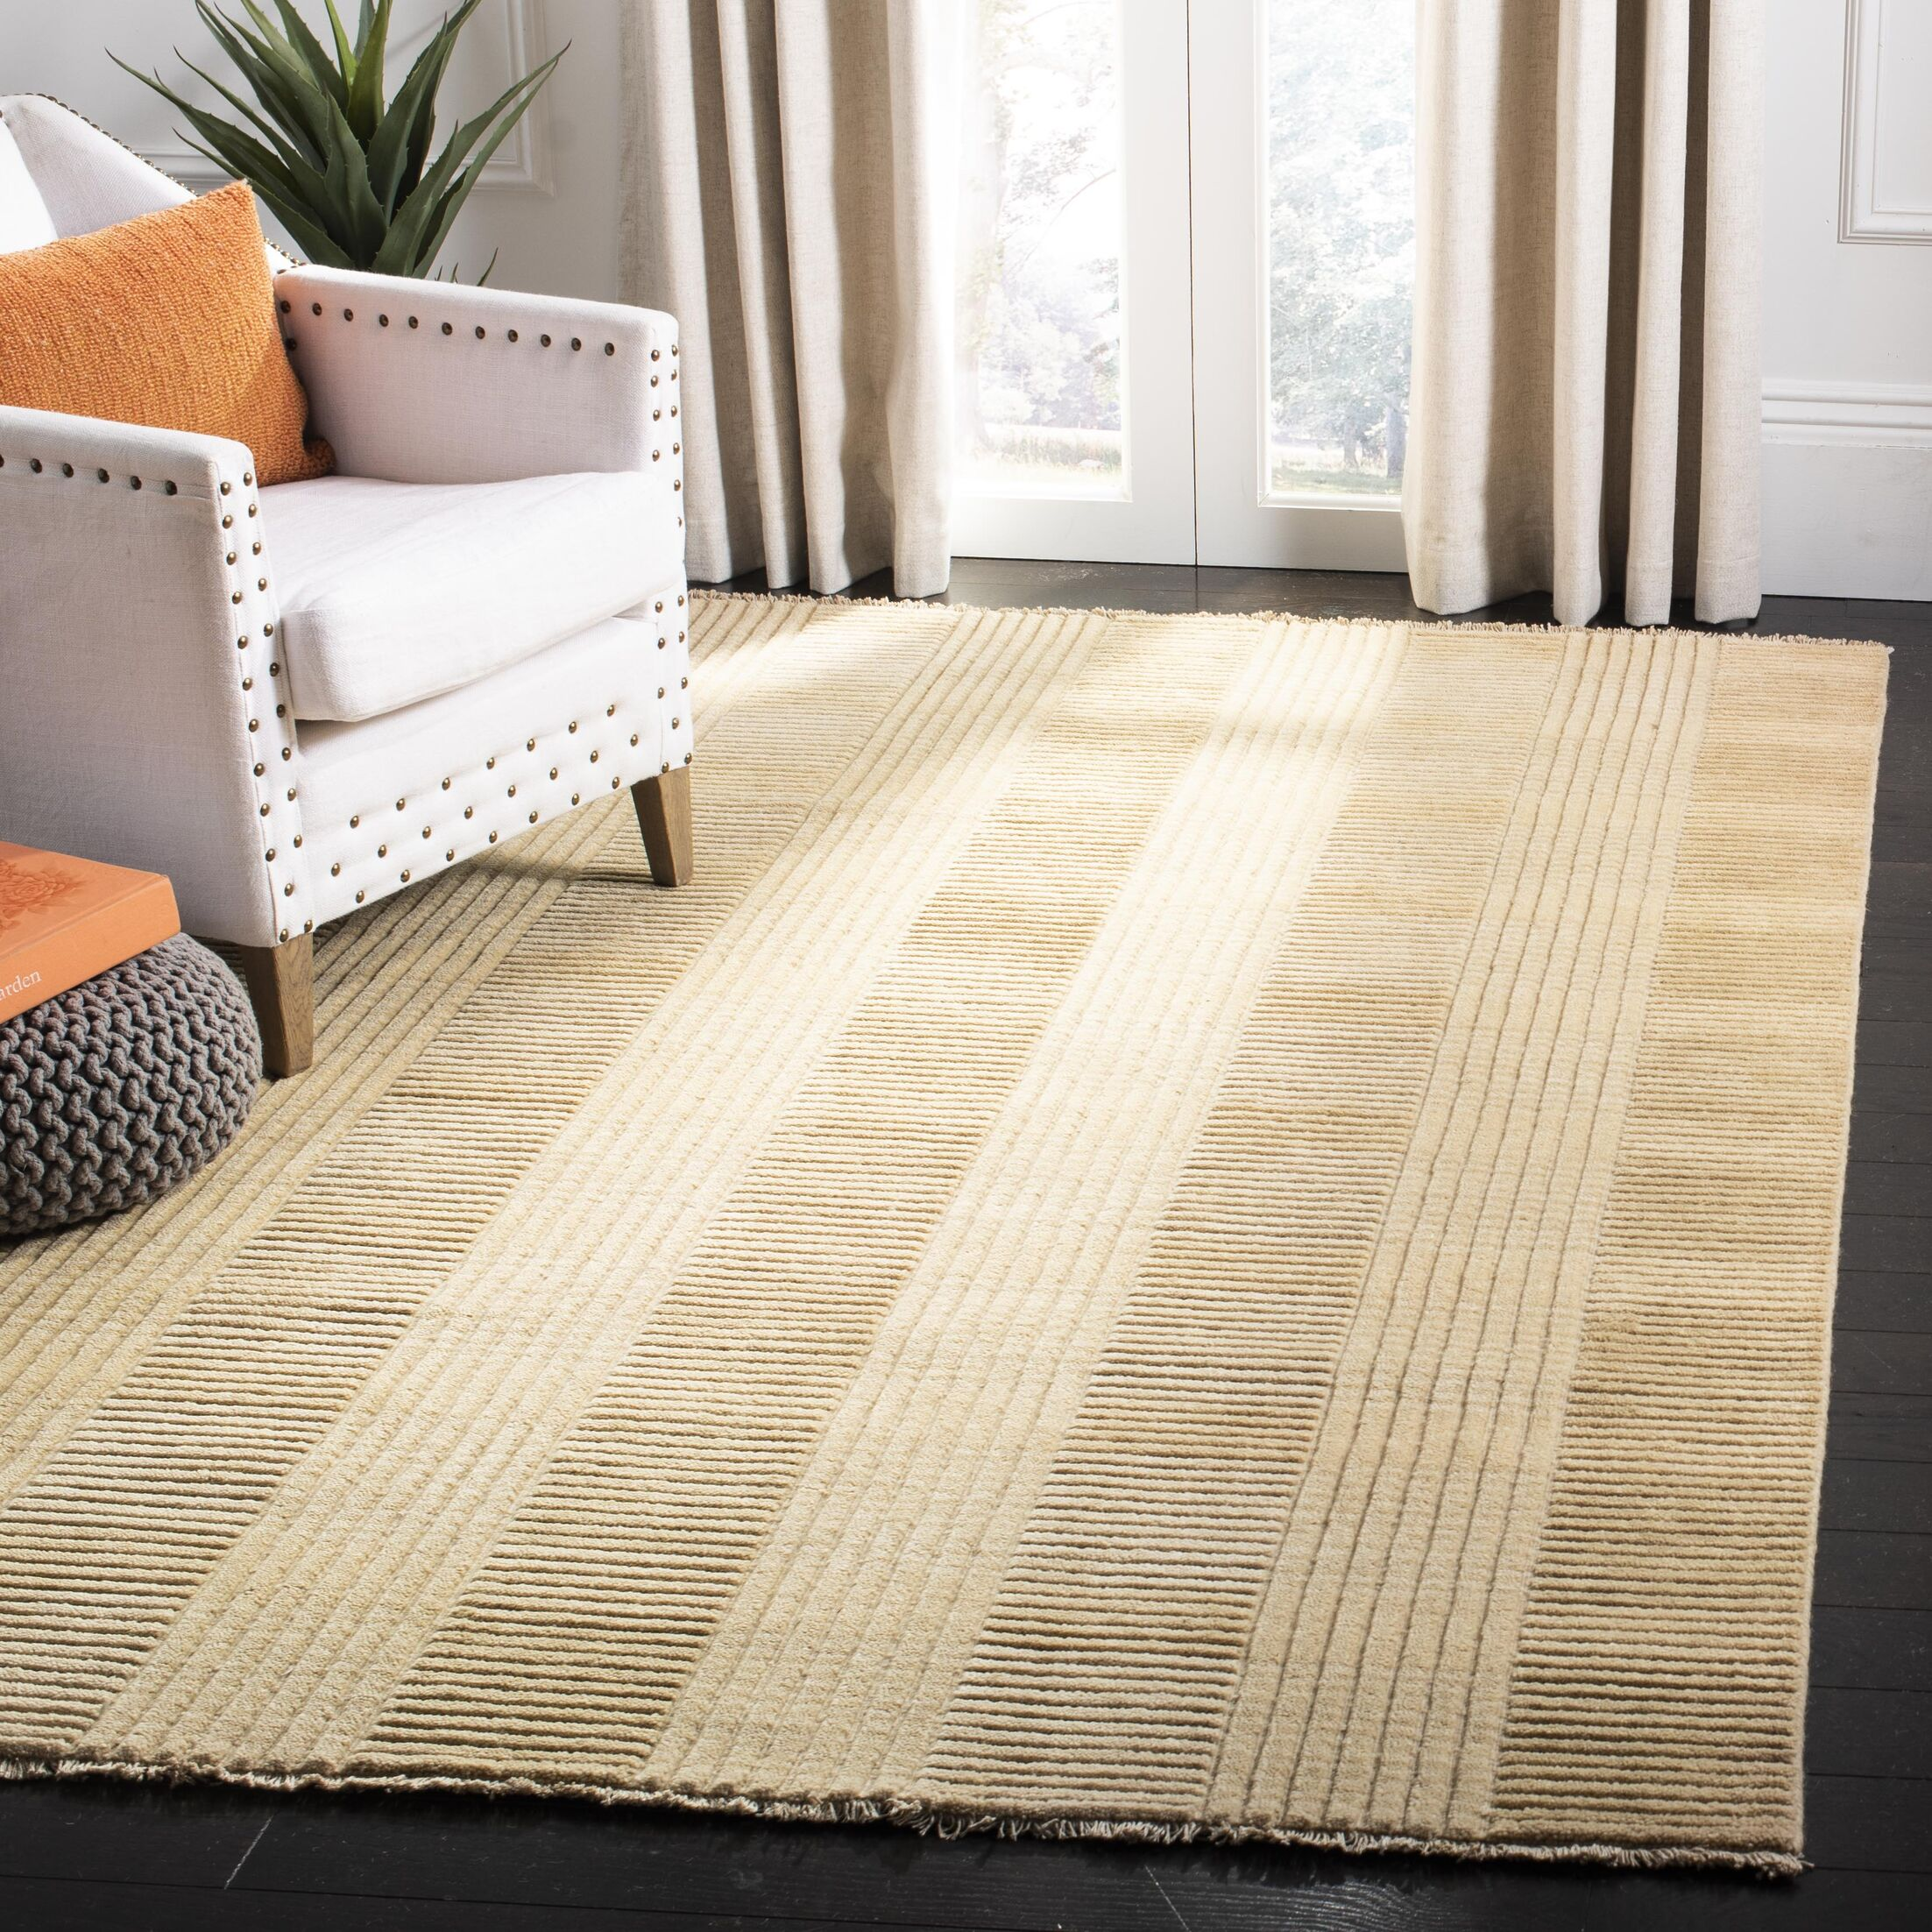 Apple Creek Hand-Knotted Beige Area Rug Rug Size: Rectangle 5' x 8'